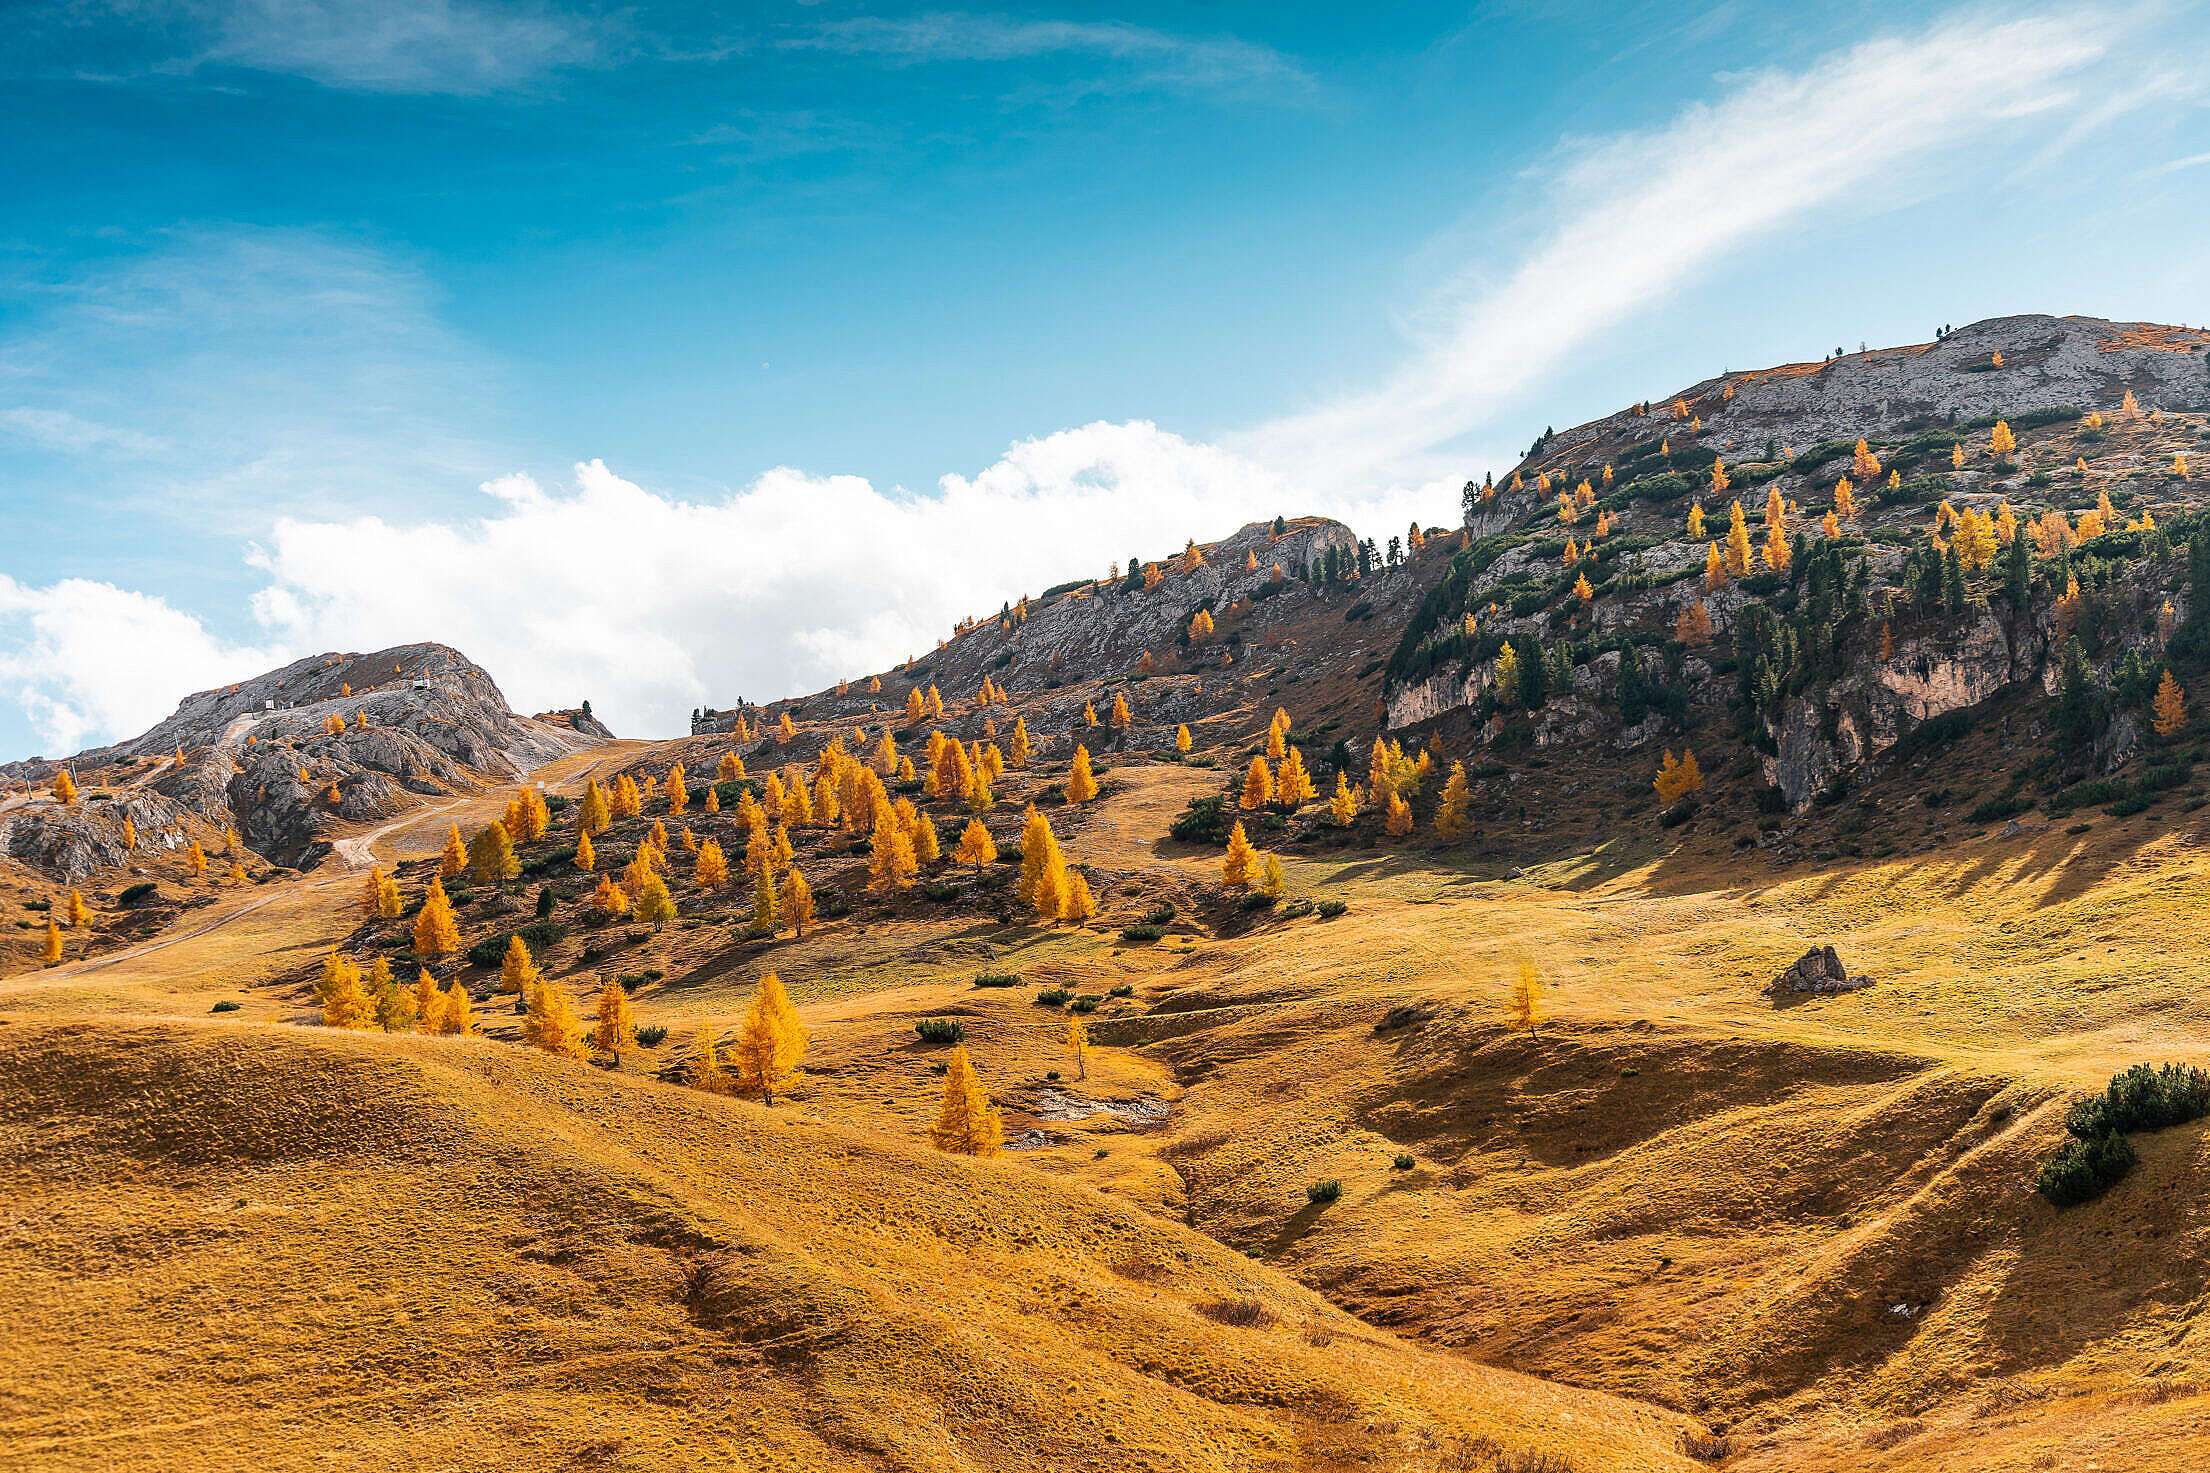 Hilly Landscape with a Dry Grass, Dolomites Free Stock Photo